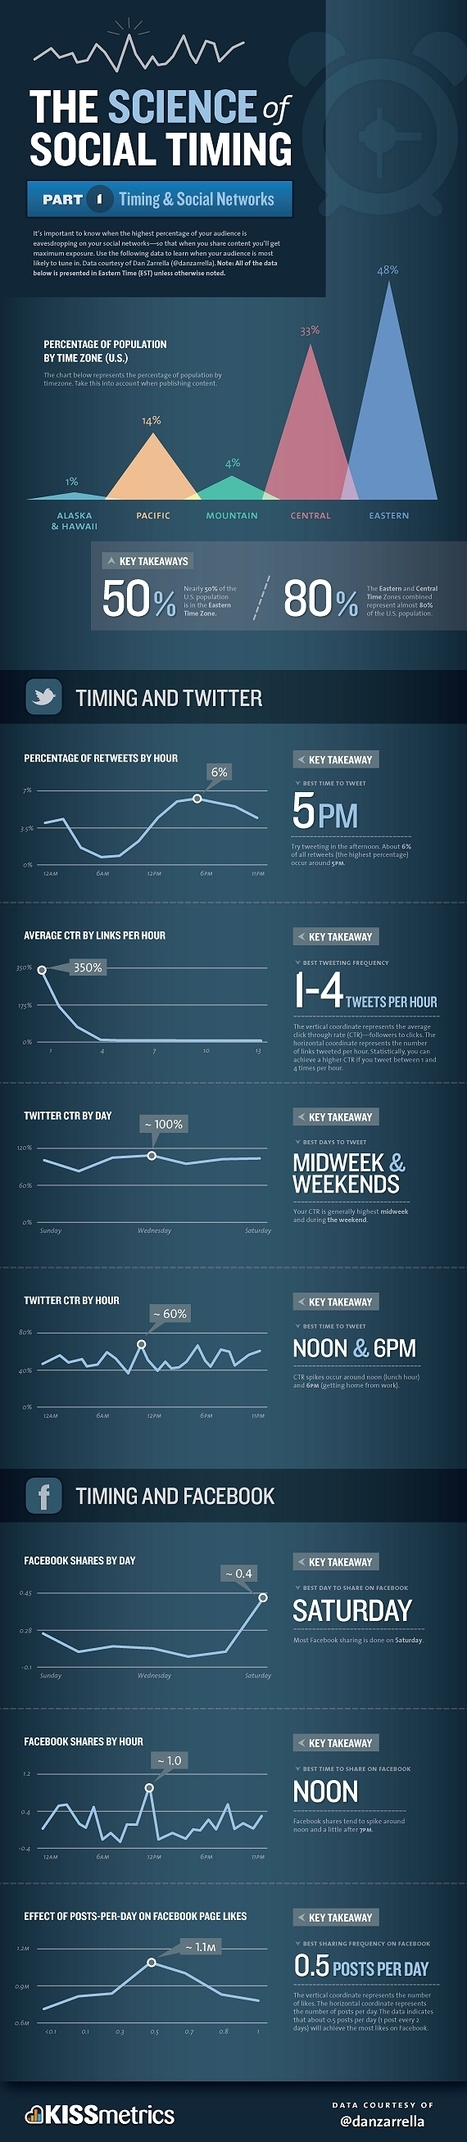 The Science of Social Timing Part 1: Social Networks (Infographic) | Curation, Social Business and Beyond | Scoop.it